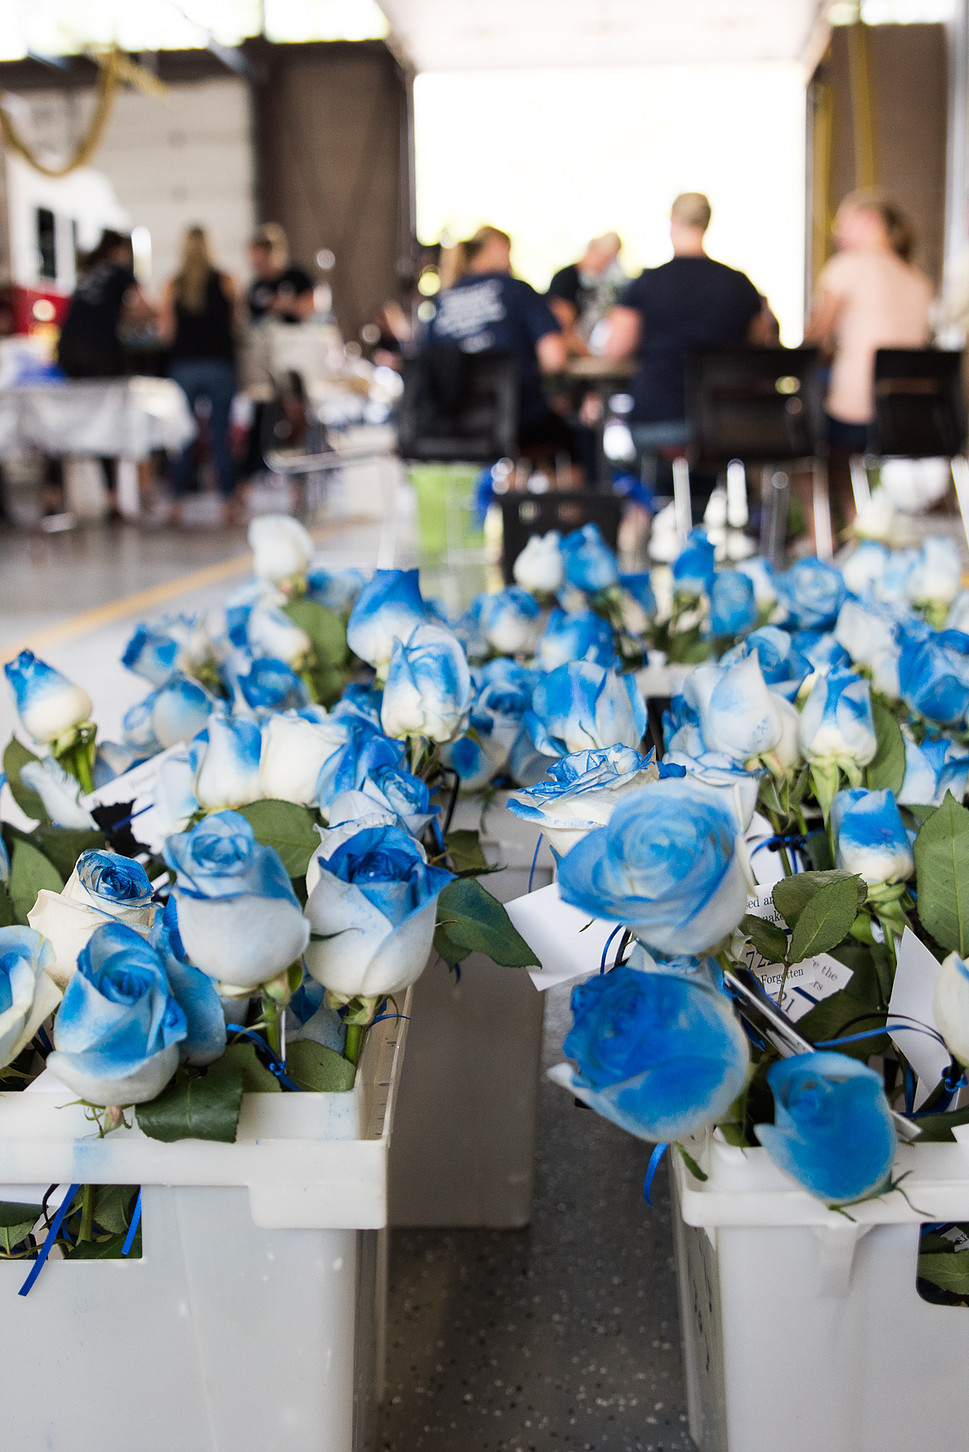 Police Week 2018: Honoring the Fallen and So Much More | Twin Cities Moms Blog